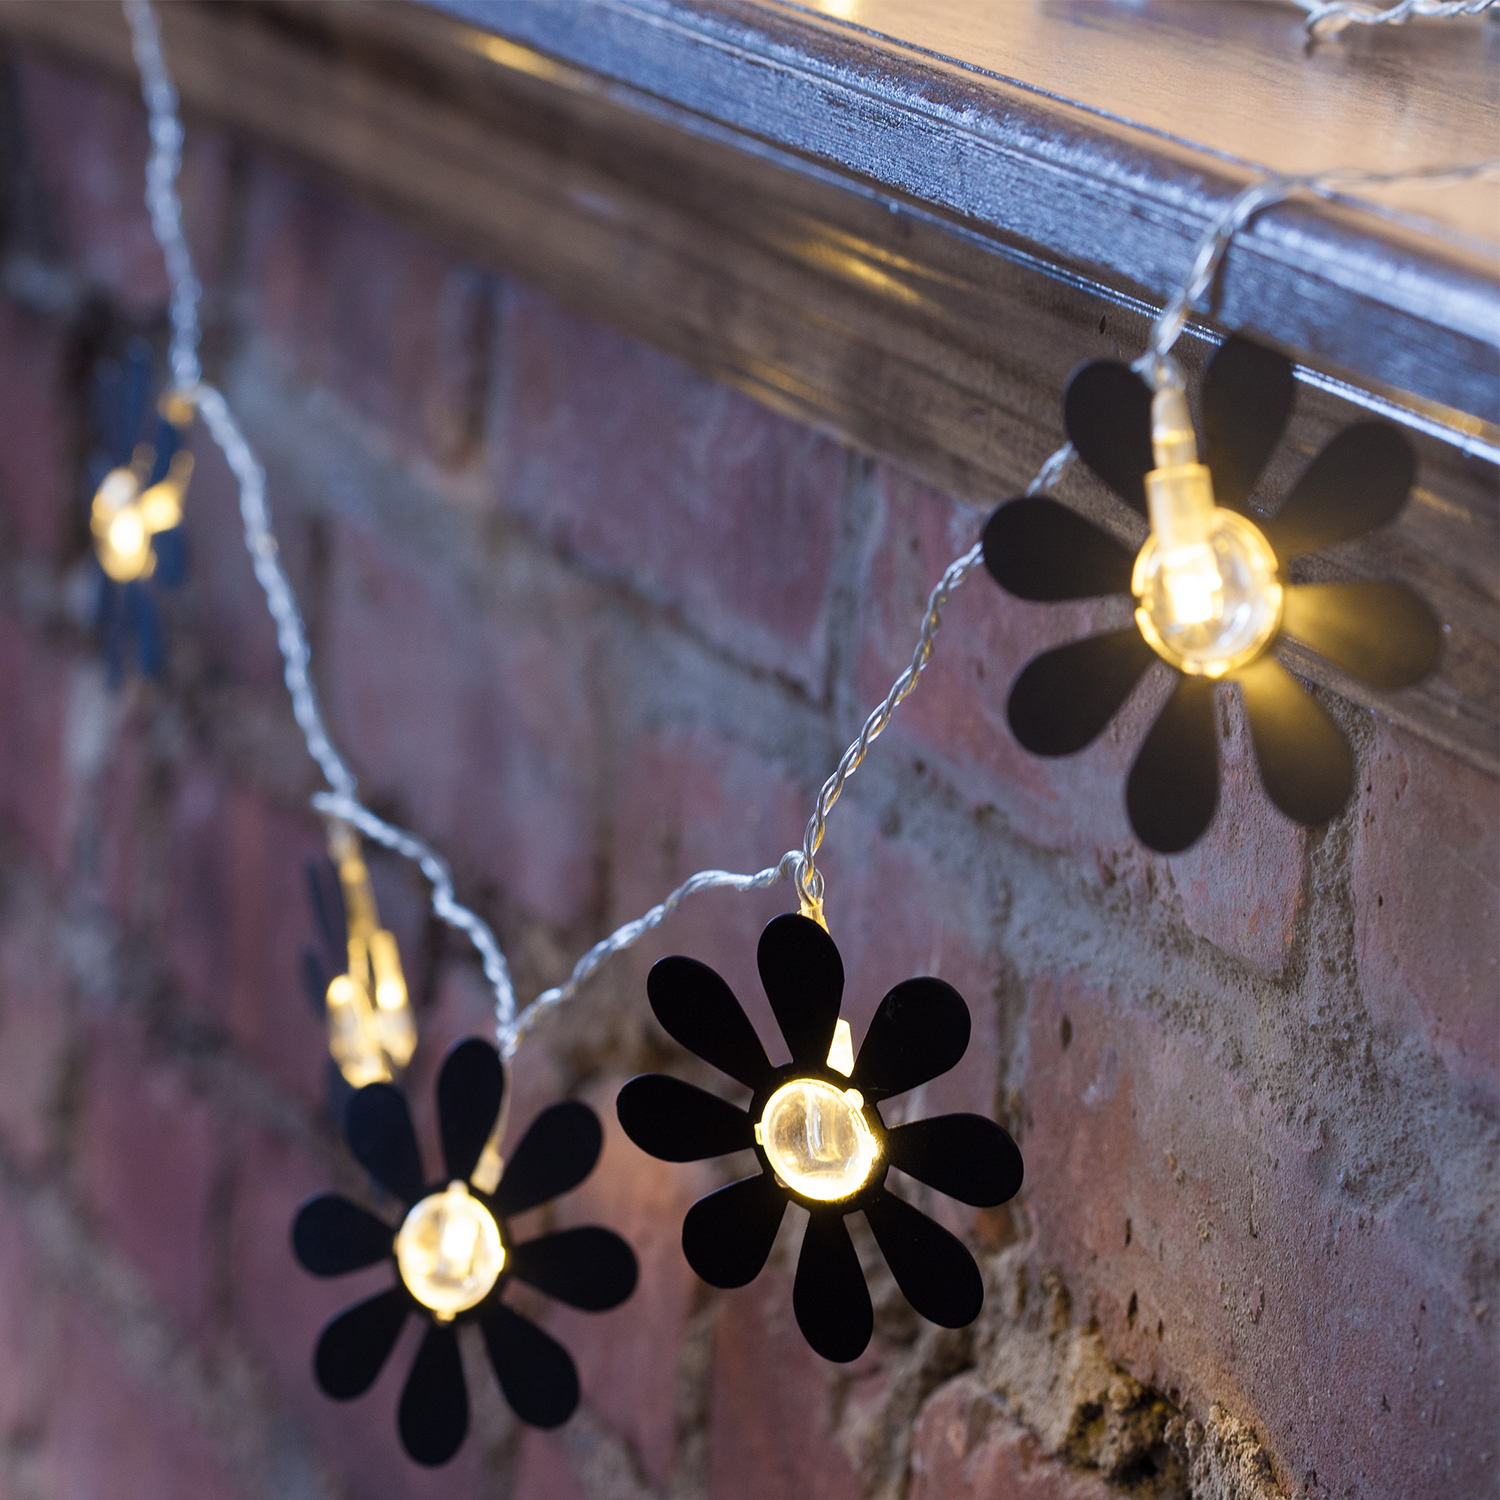 Daisy Solar String Lights: Decorative String Lights